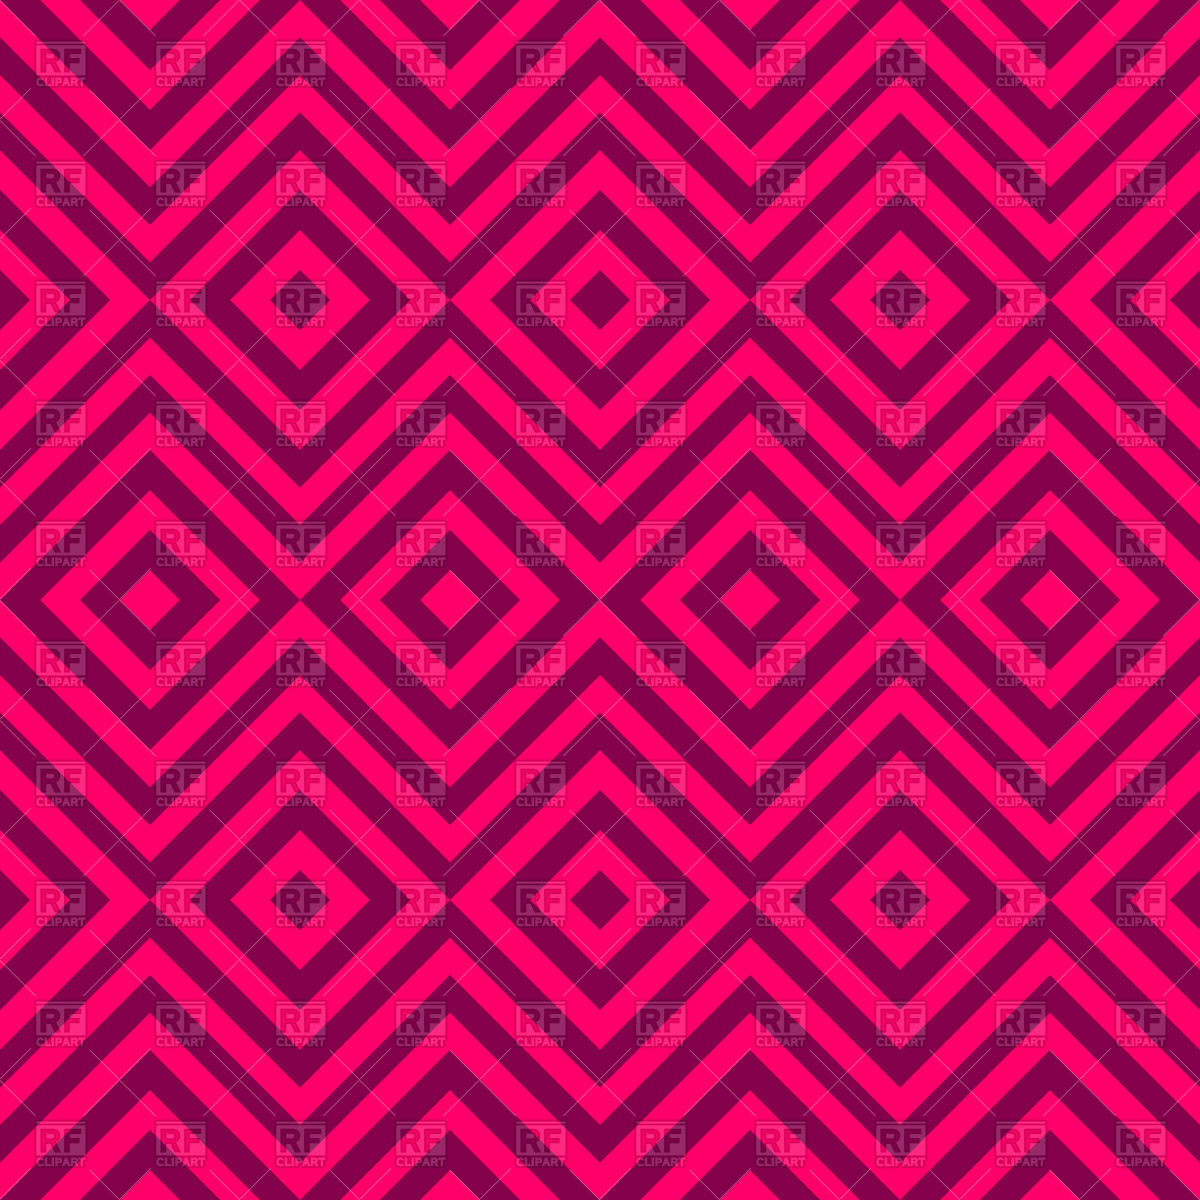 1200x1200 Hand Drawn Pink Seamless Ethnic Pattern With Zig Zag Vector Image